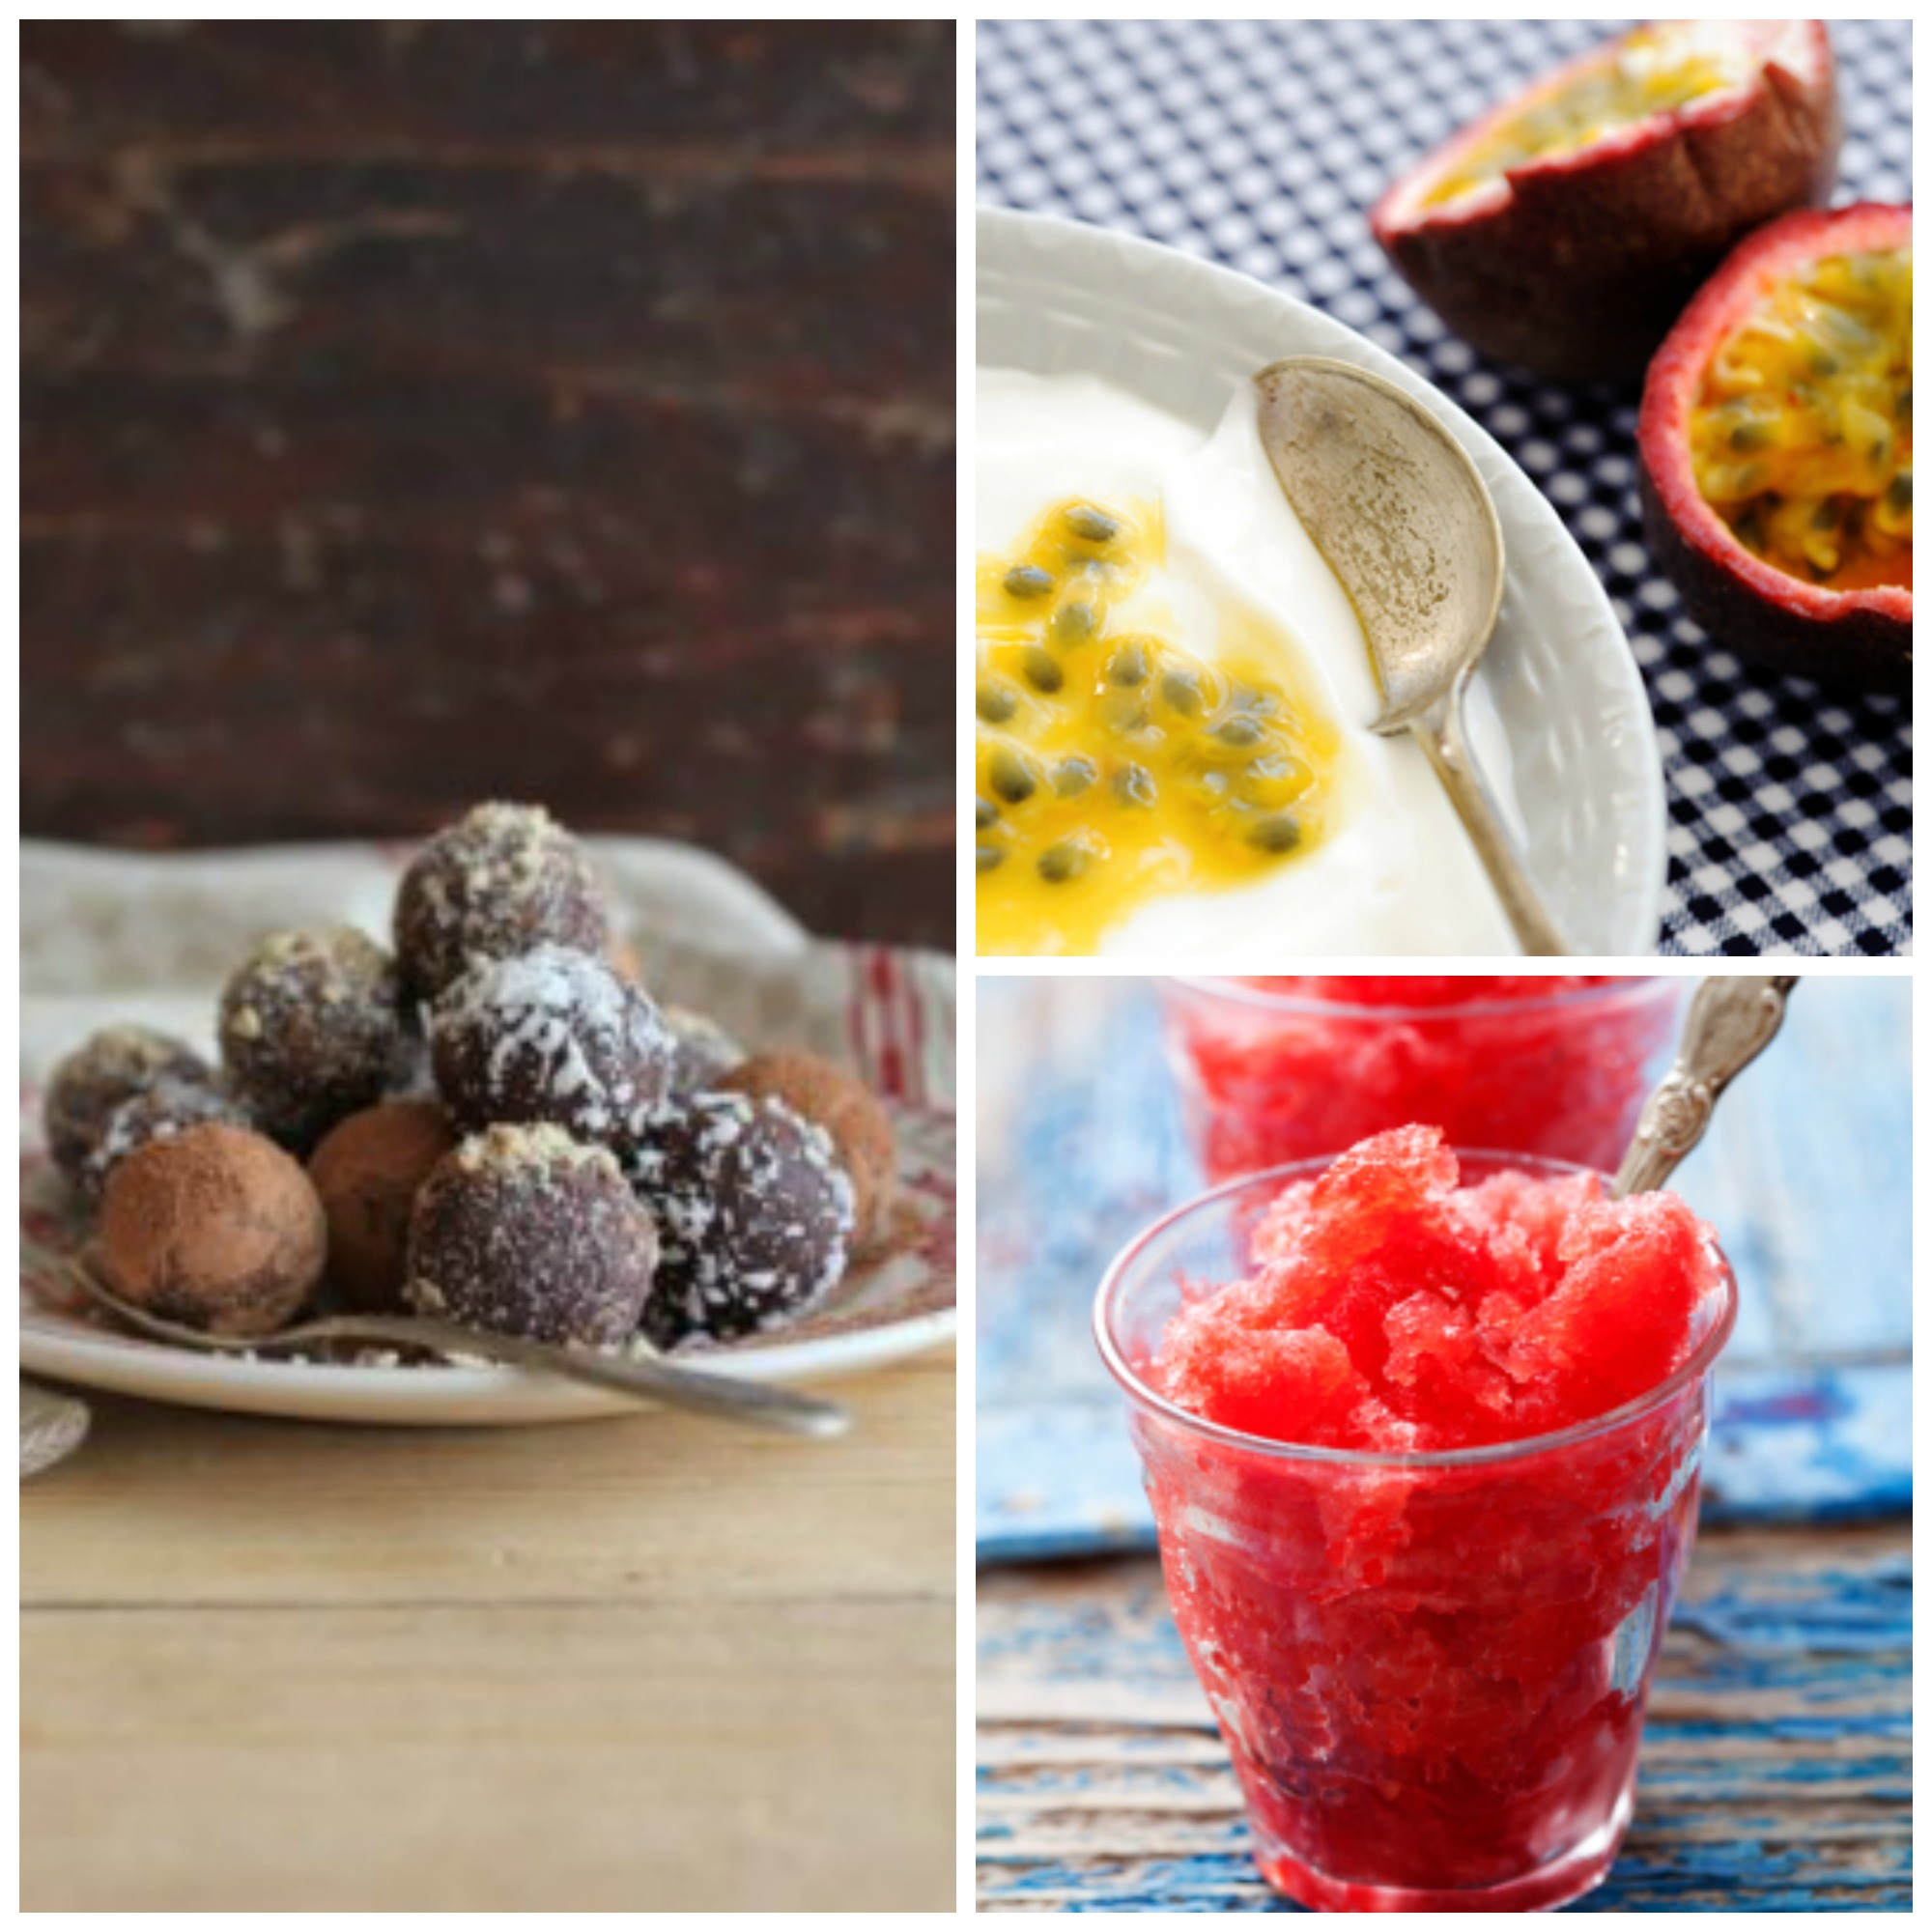 Healthy Snacks For Sweet Cravings  Lose Baby Weight 10 Snacks To Satisfy A Sweet Craving